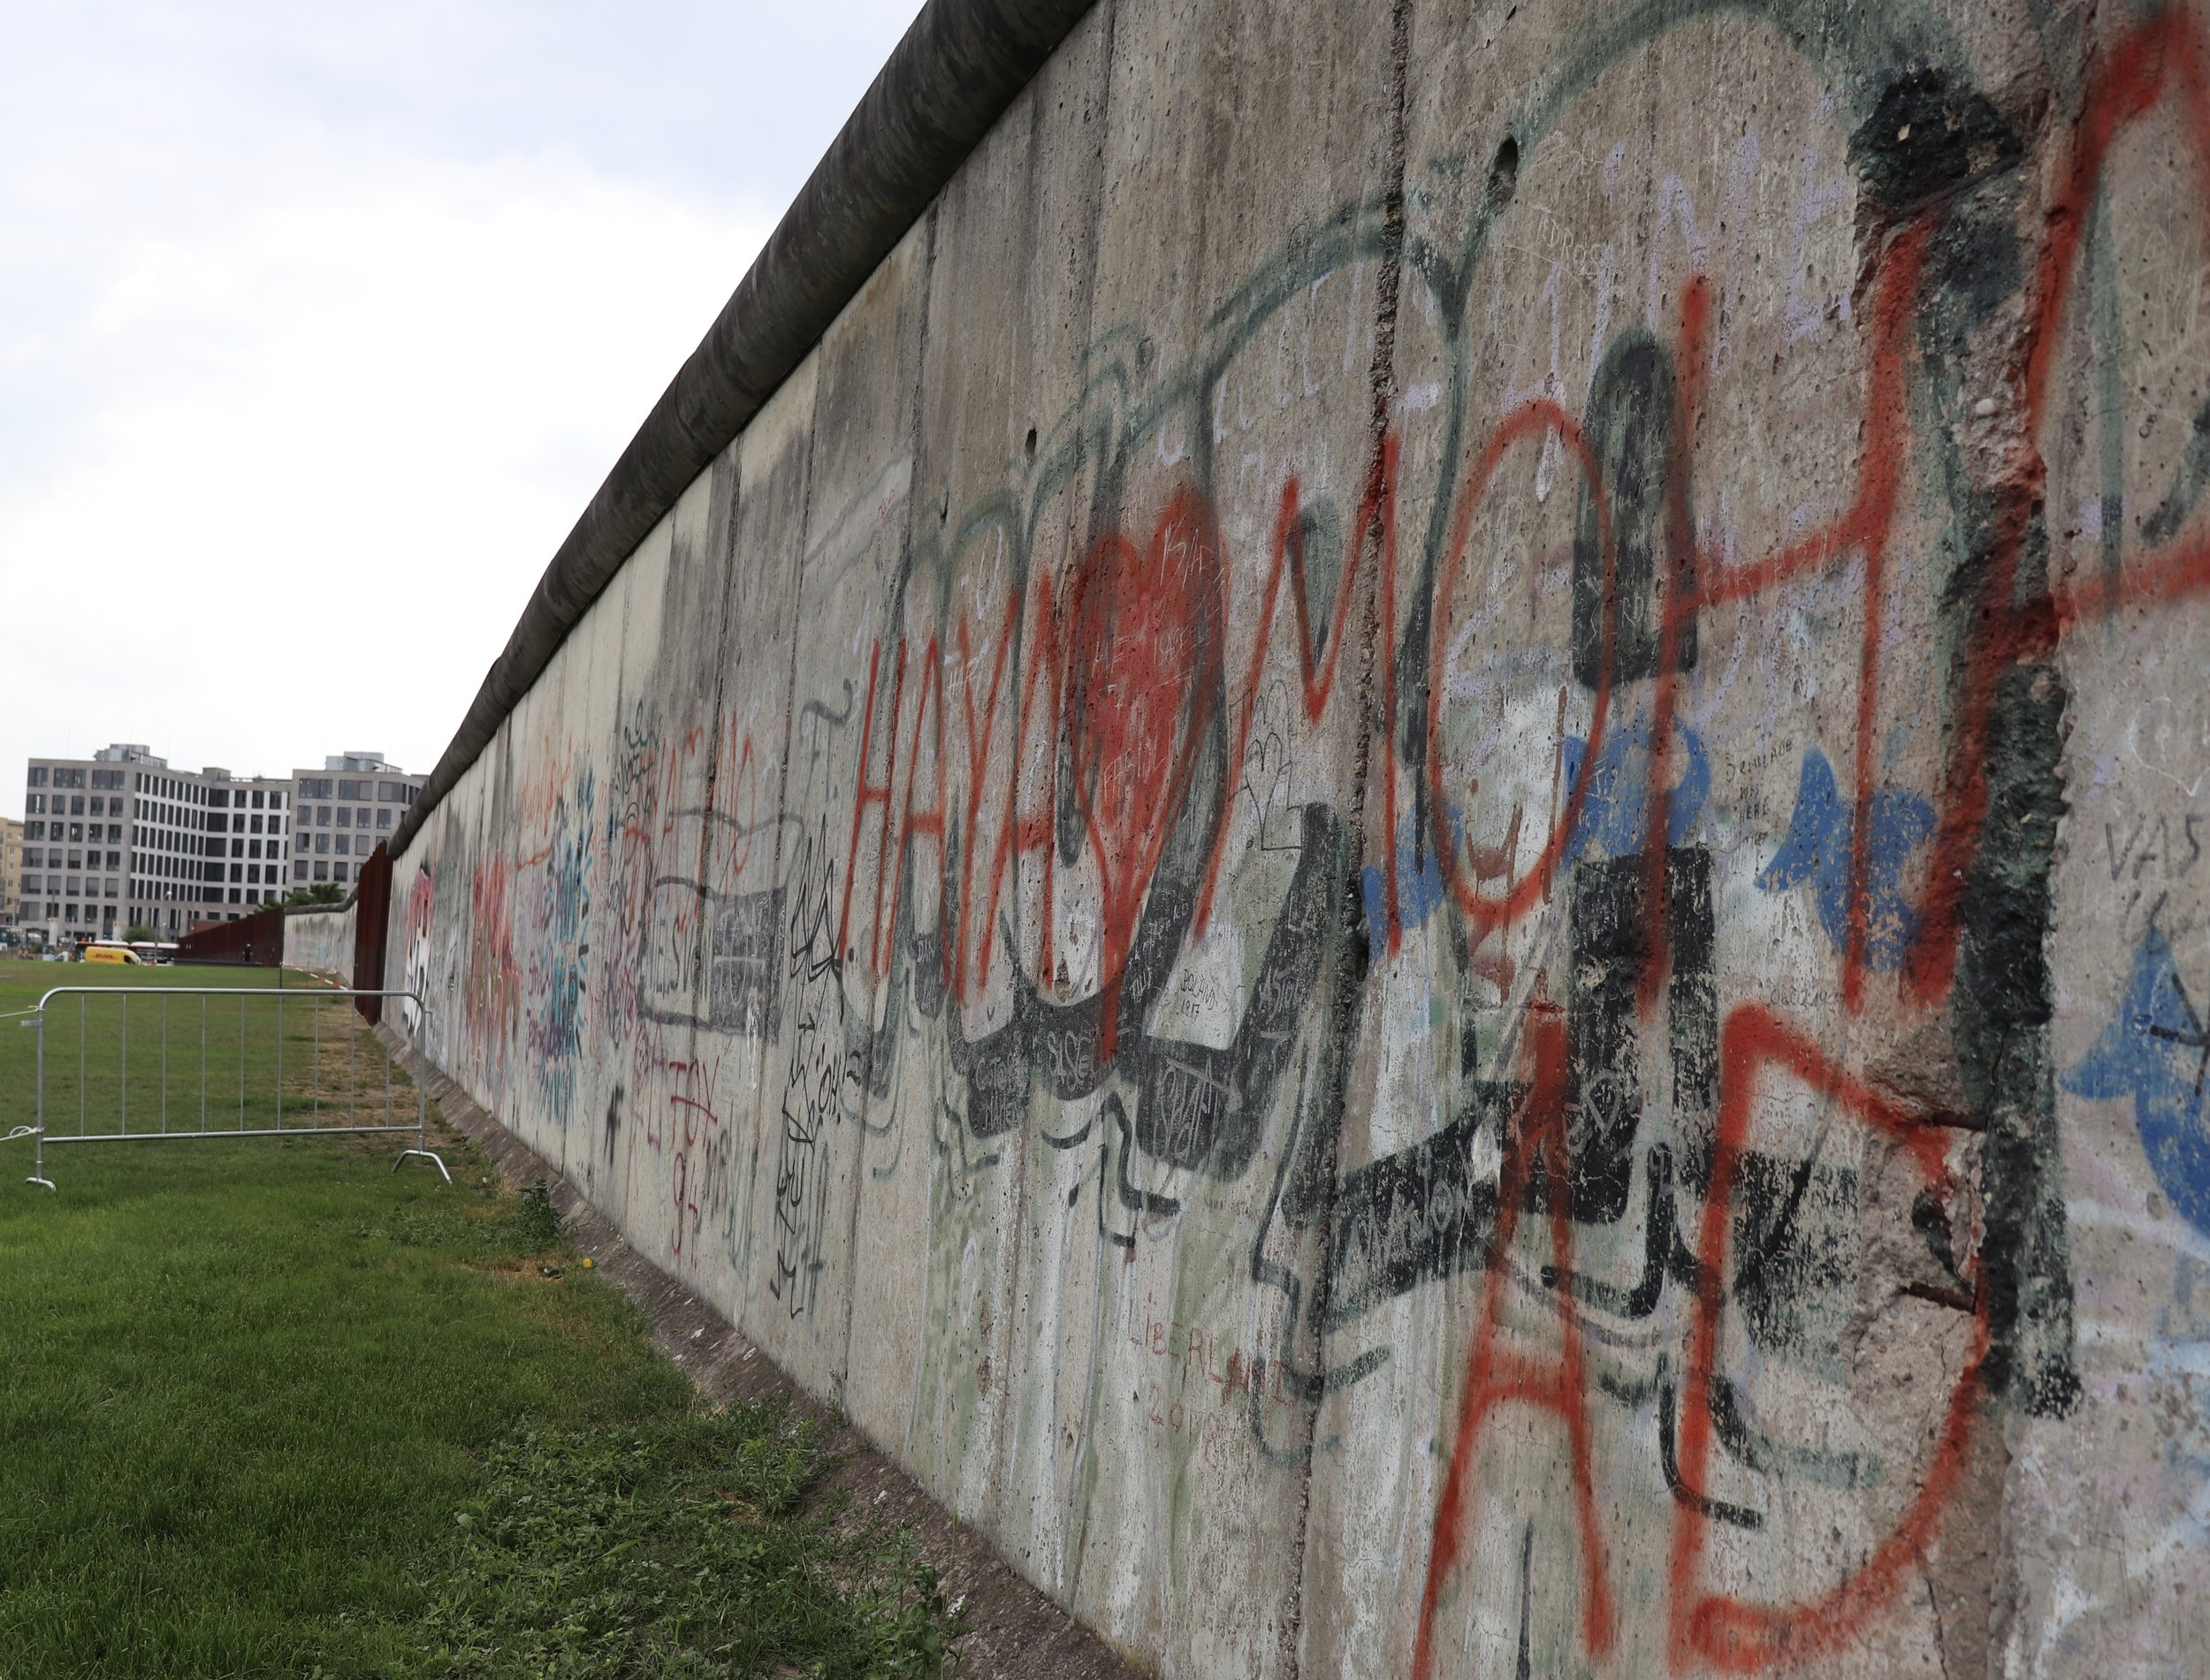 The largest remaining remnant of the Berlin Wall.